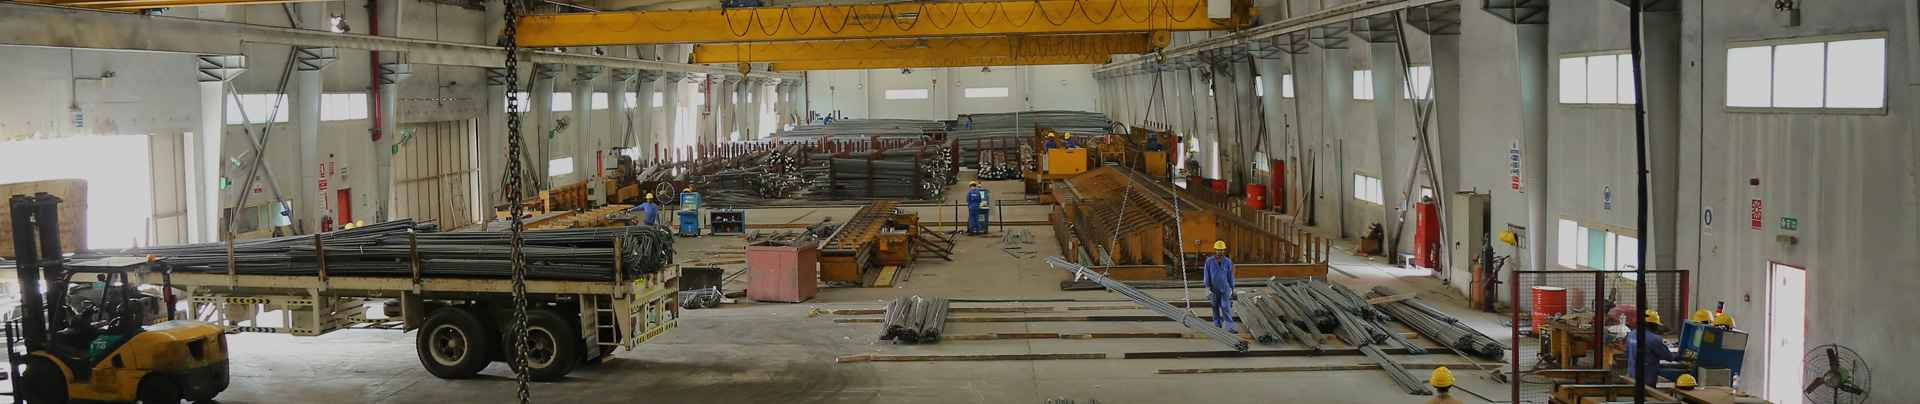 GBMT STRUCTURAL STEEL INDUSTRIES | RMB Group